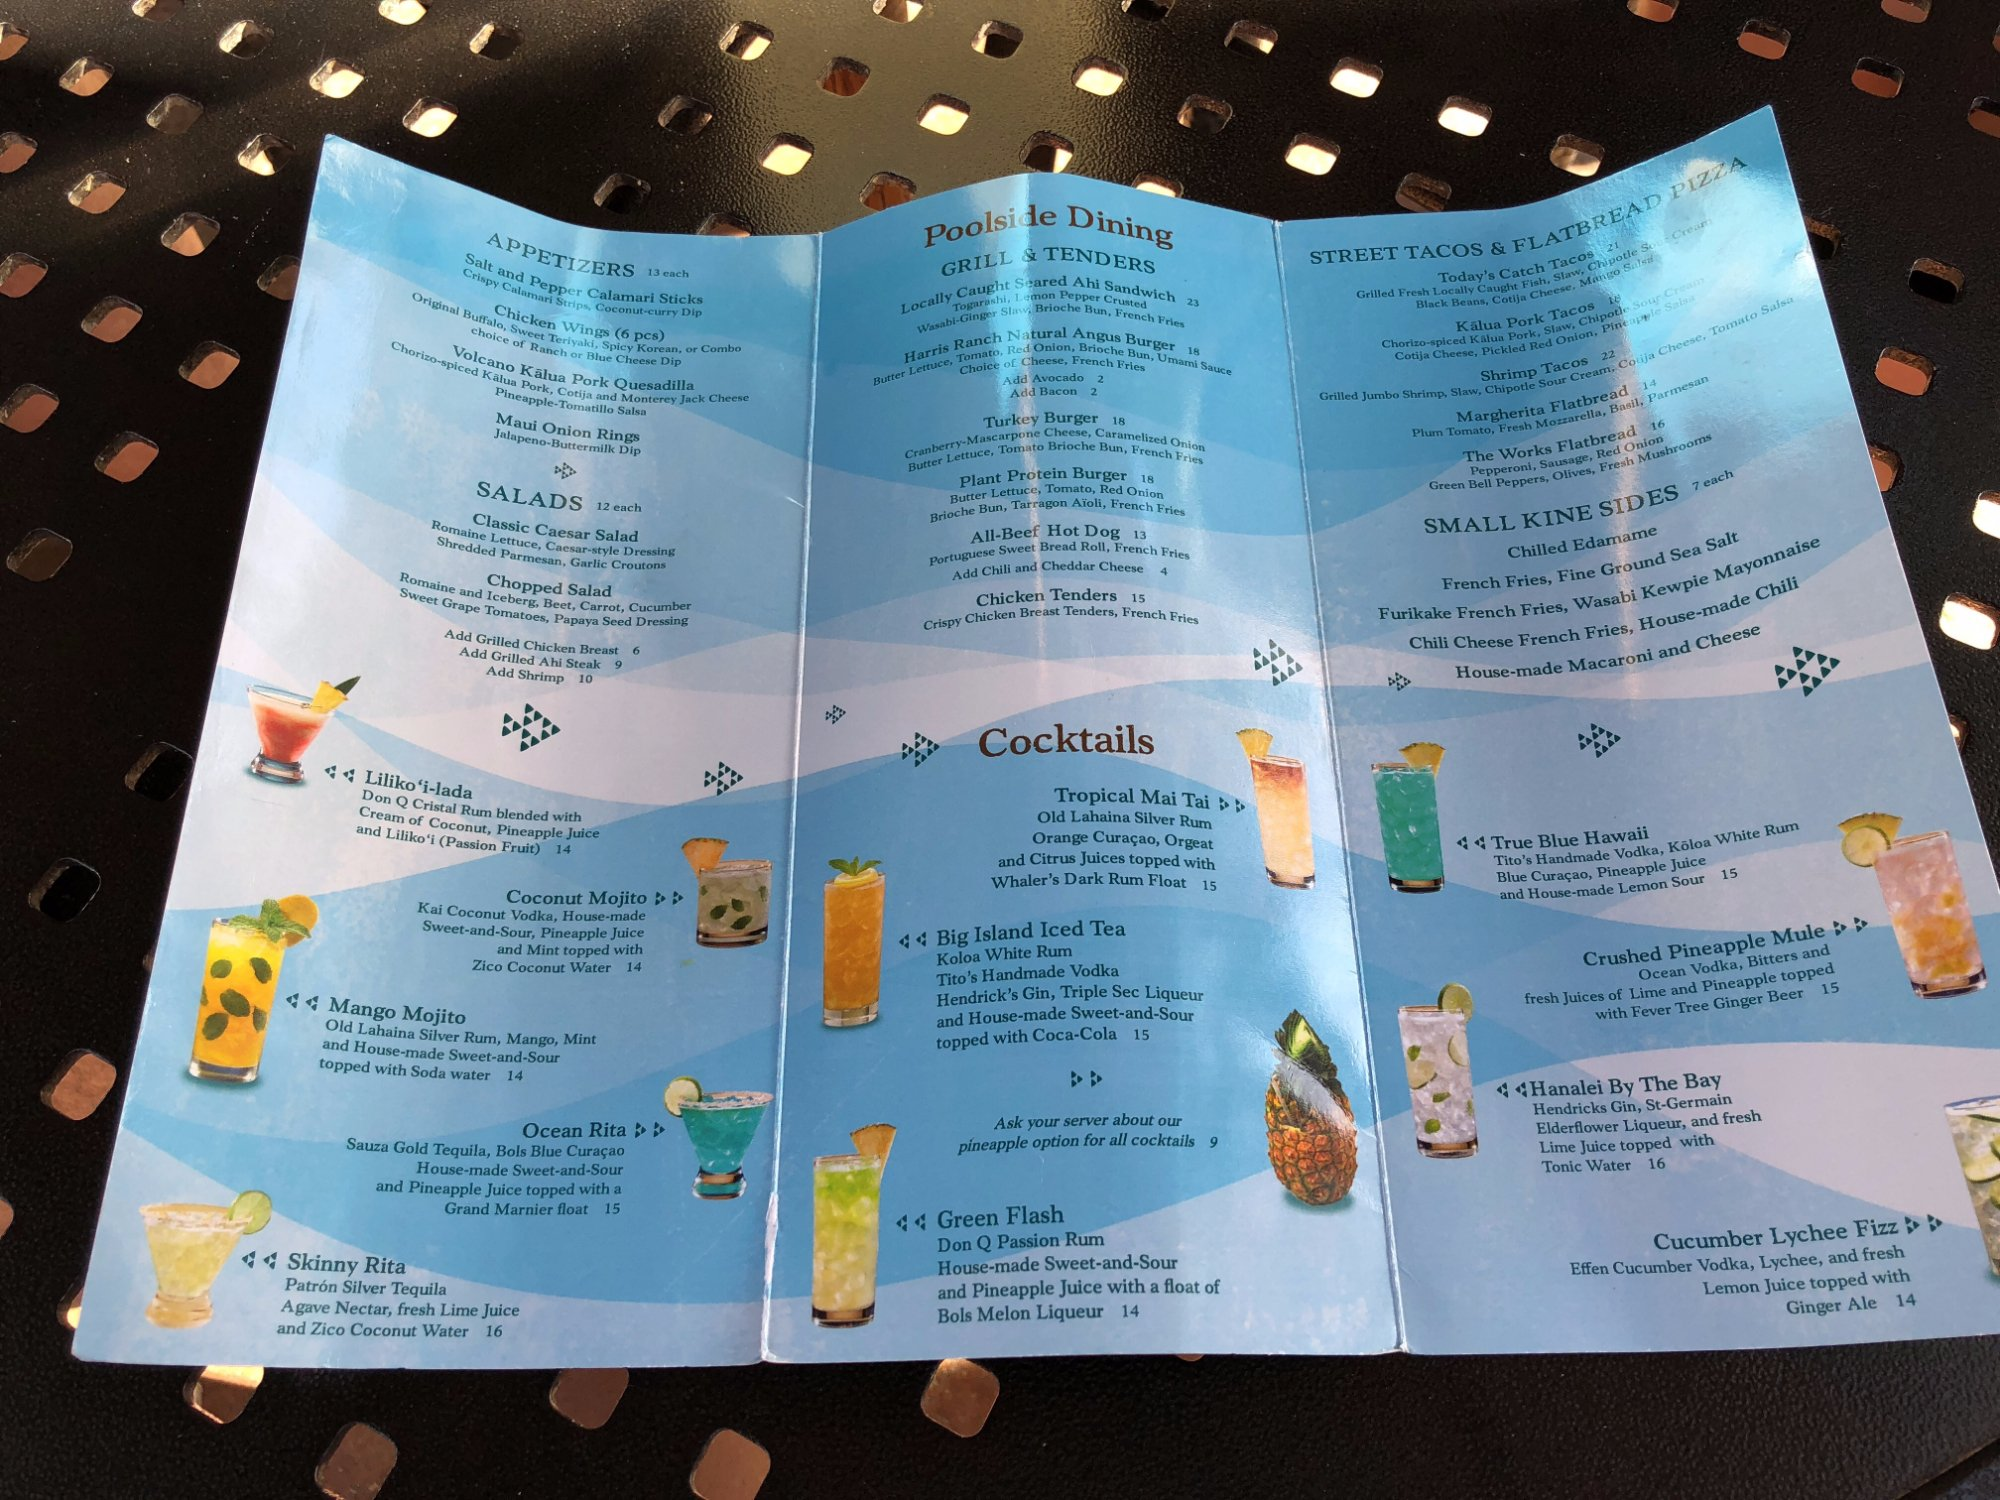 This was the menu for the pool bar drink and food offerings.